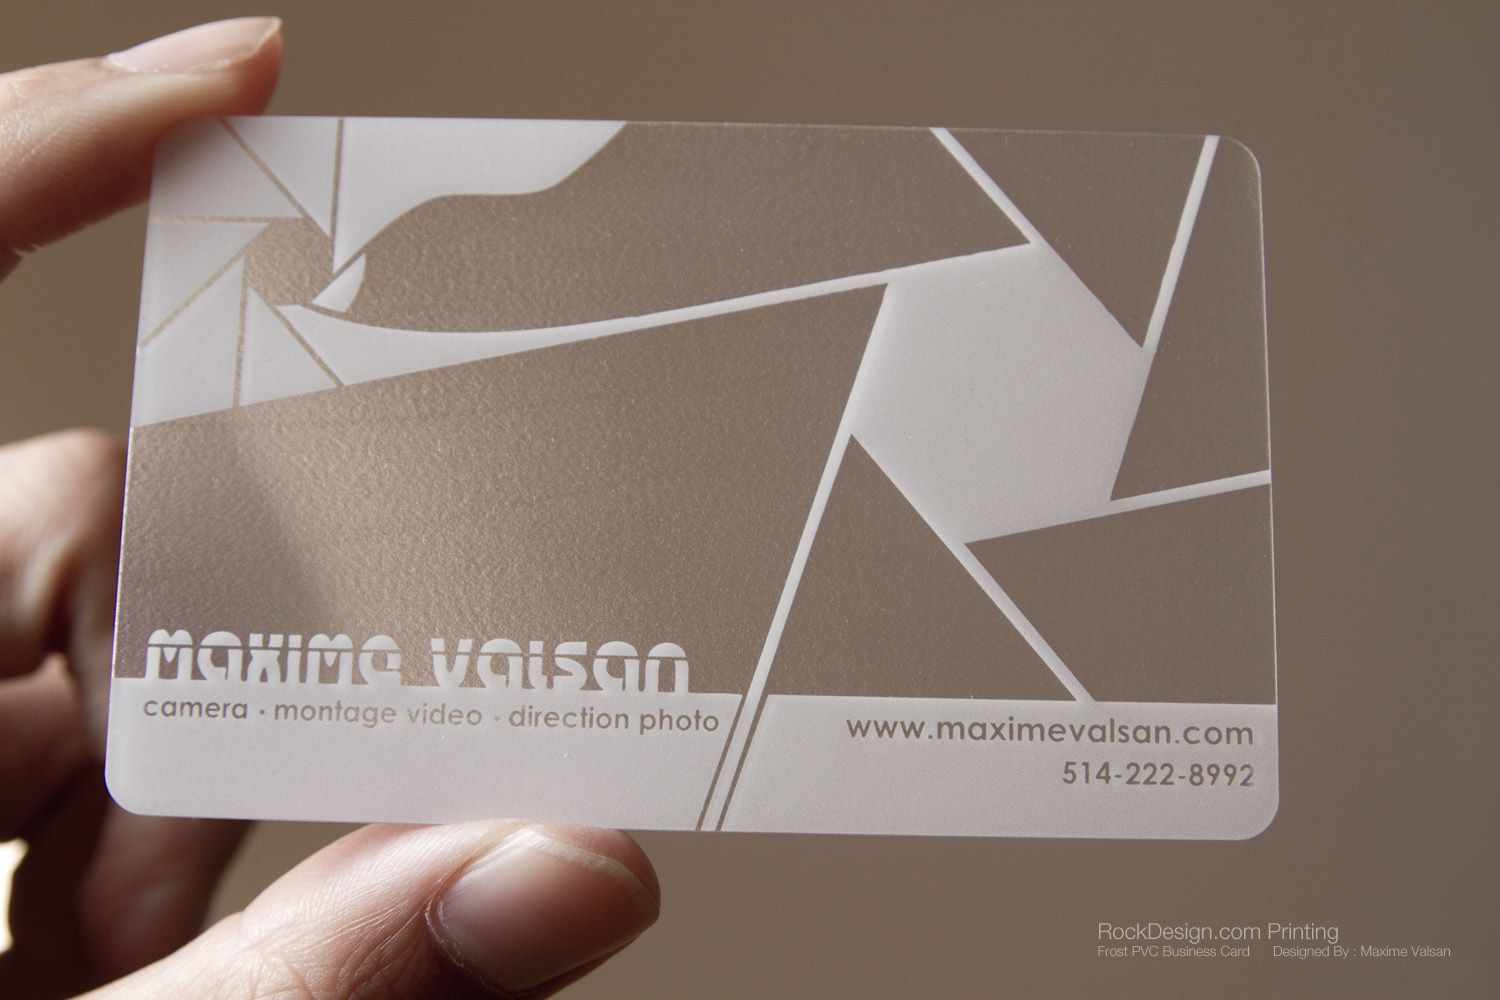 Rockdesign plastic business cards frost pvc business card rockdesign plastic business cards frost pvc business card colourmoves